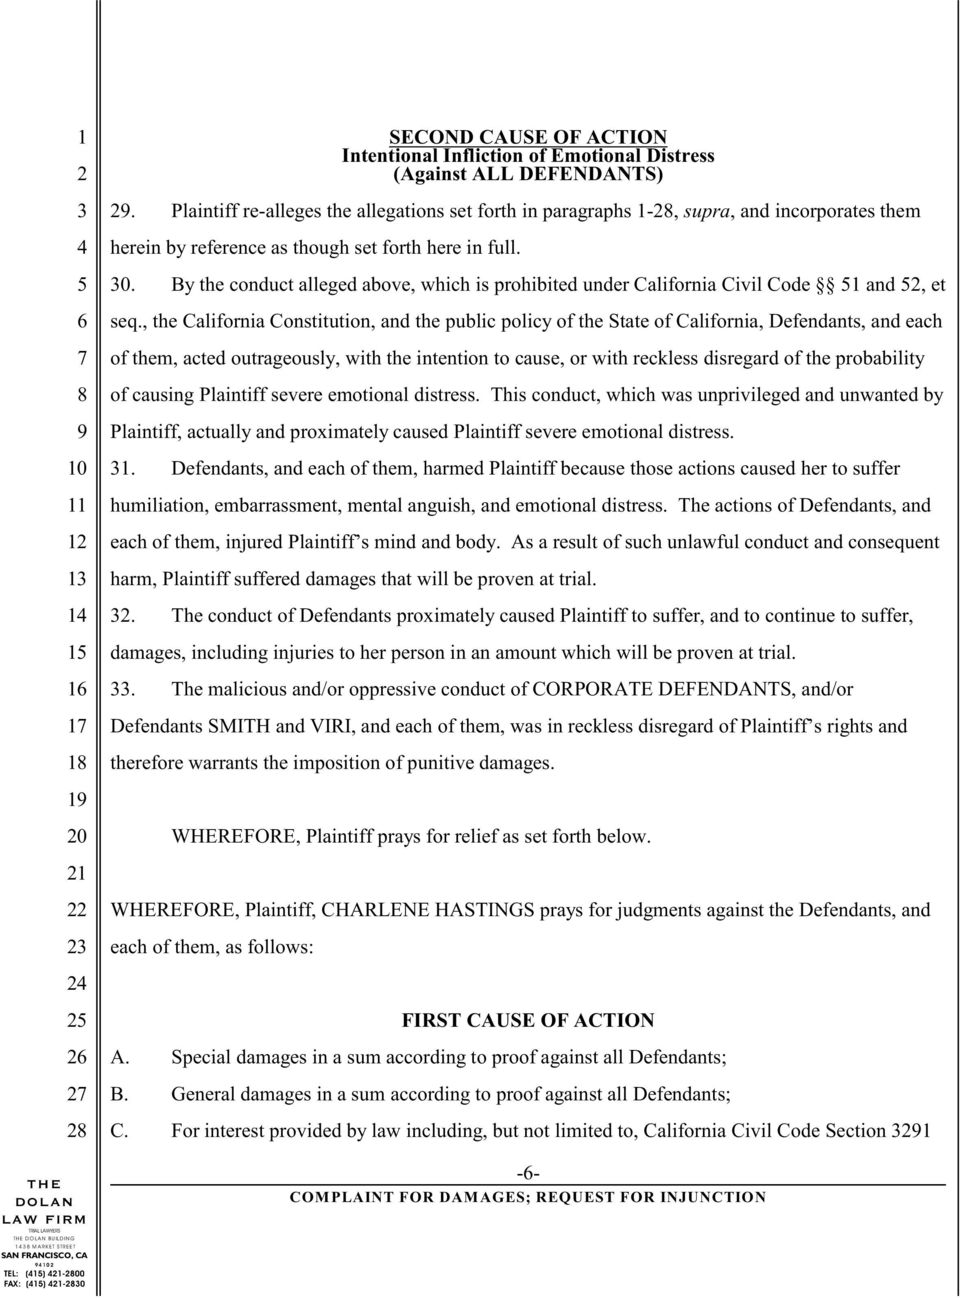 By the conduct alleged above, which is prohibited under California Civil Code 1 and, et seq.